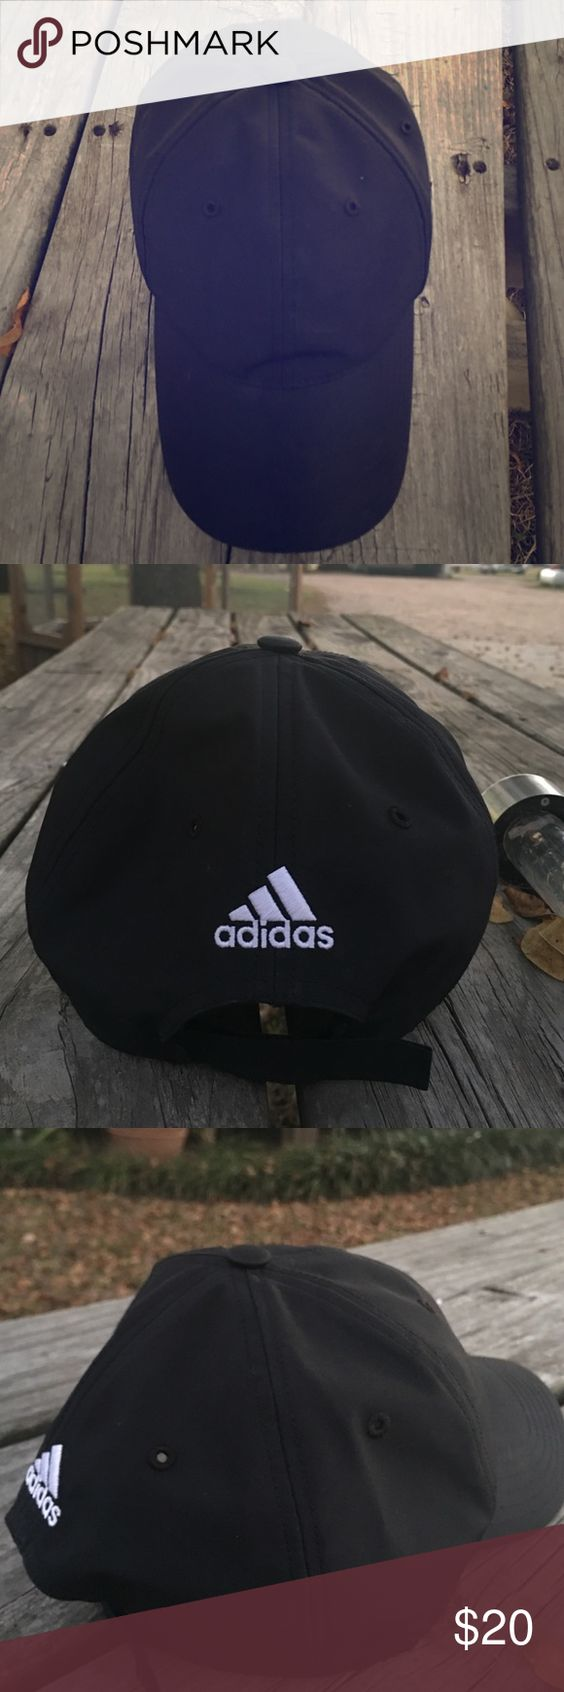 Black Adidas hat Bought and worn once black adjustable 'one size fits most' adidas cap/baseball hat. Like new Adidas Accessories Hats